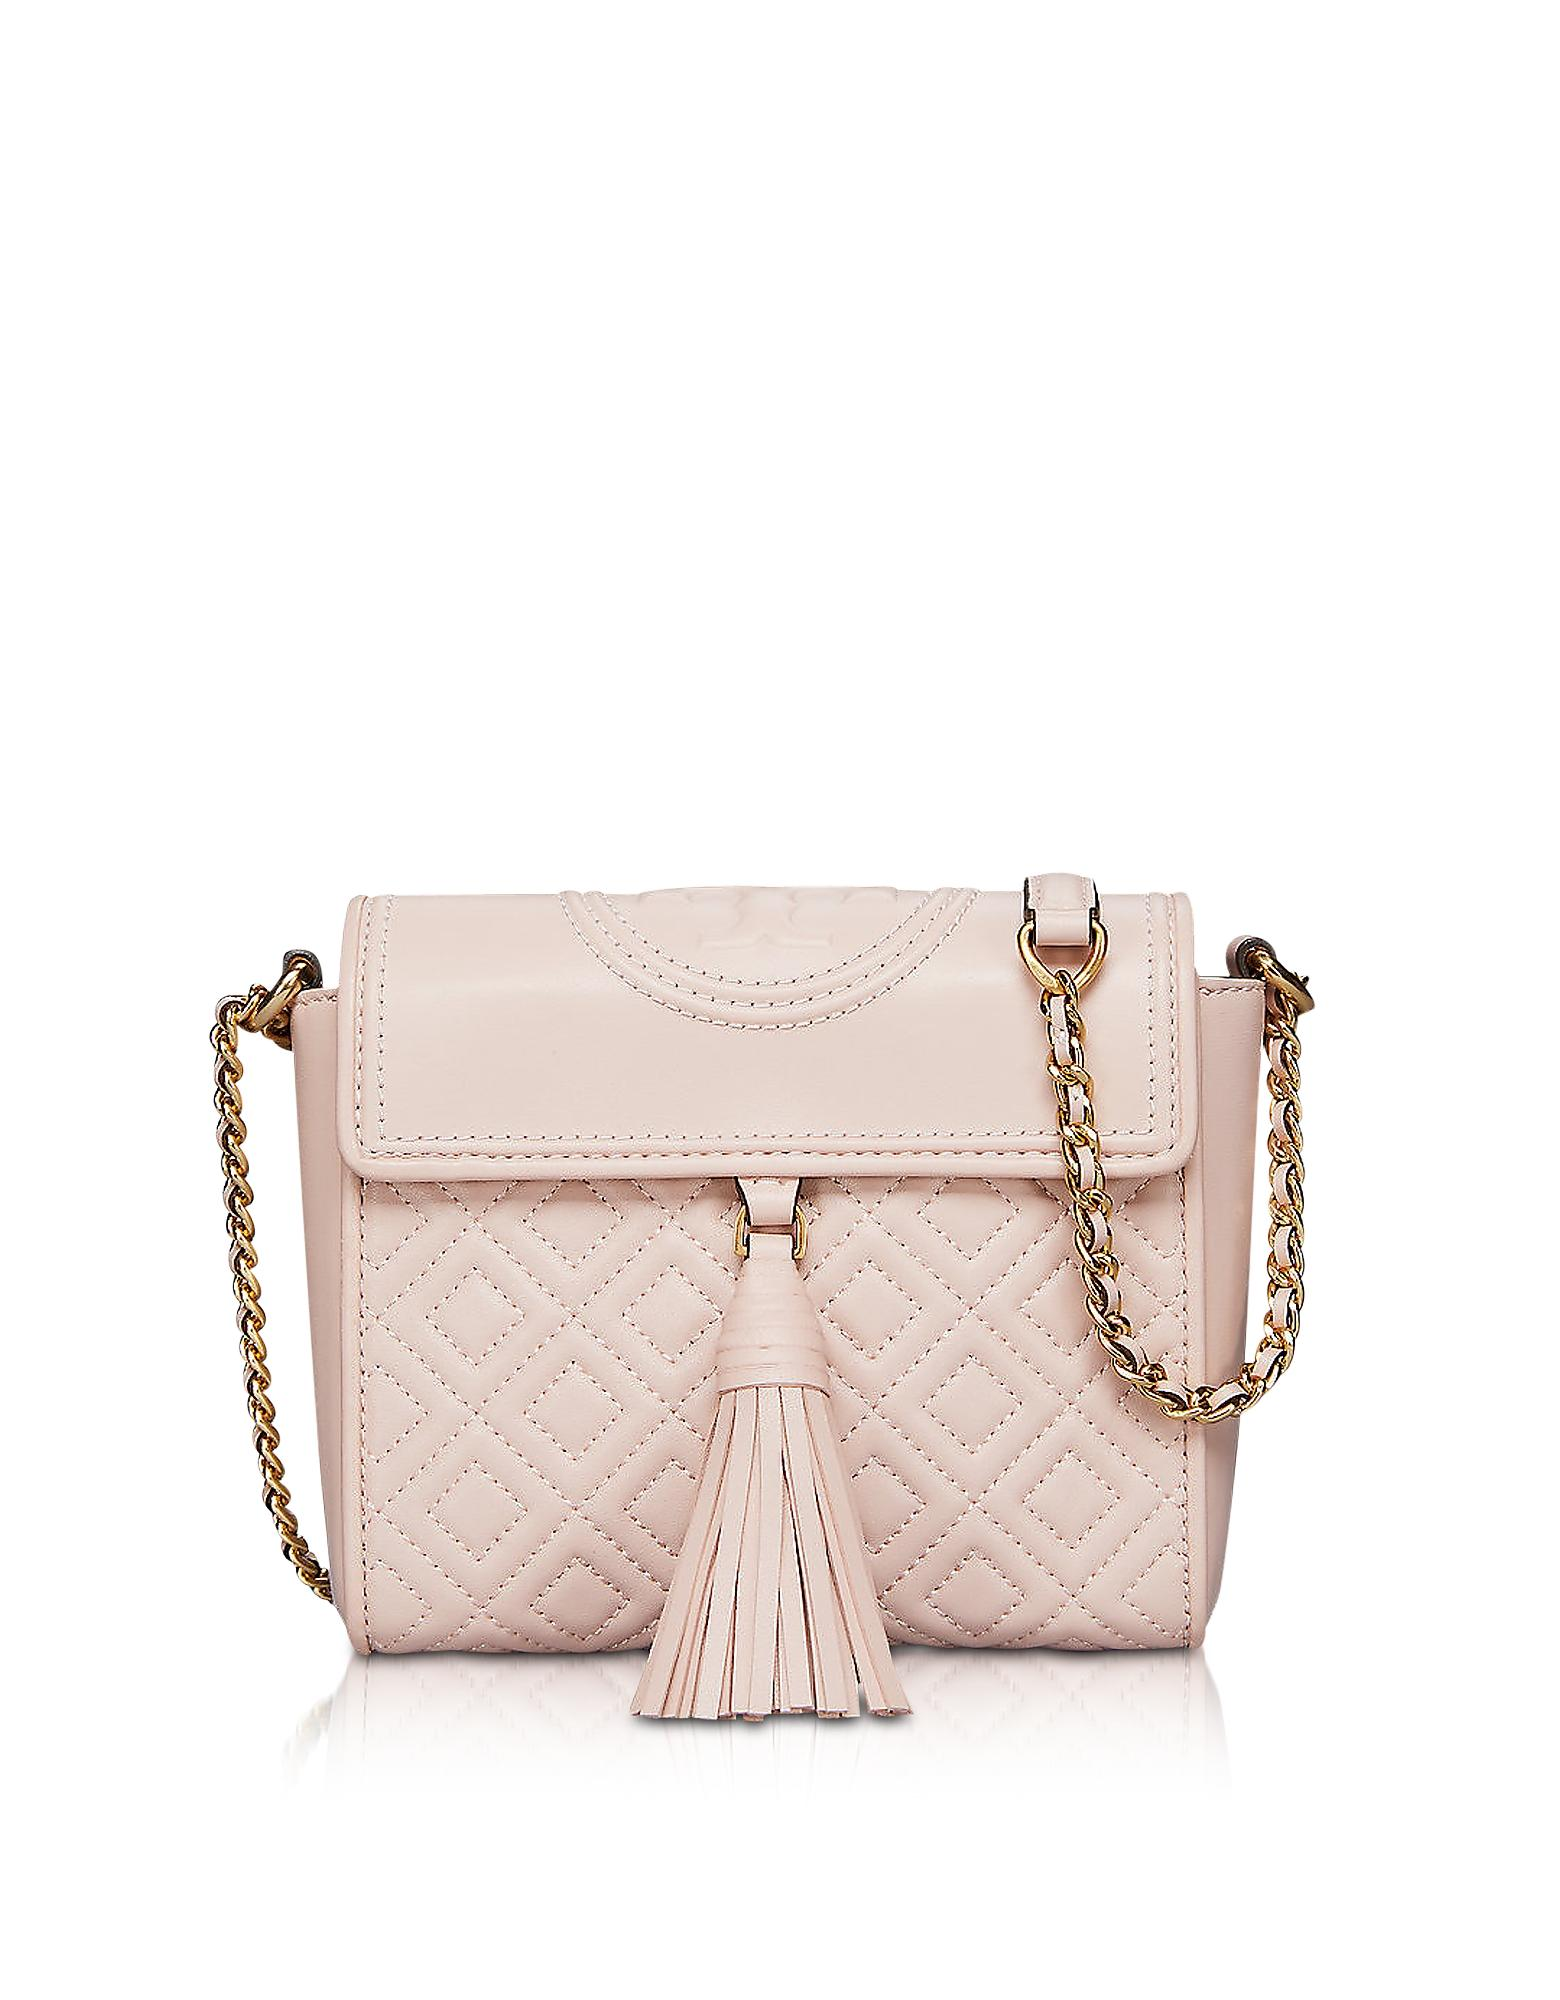 0101fd59a Tory Burch Fleming Convertible Quilted Leather Box Crossbody Bag In Shell  Pink